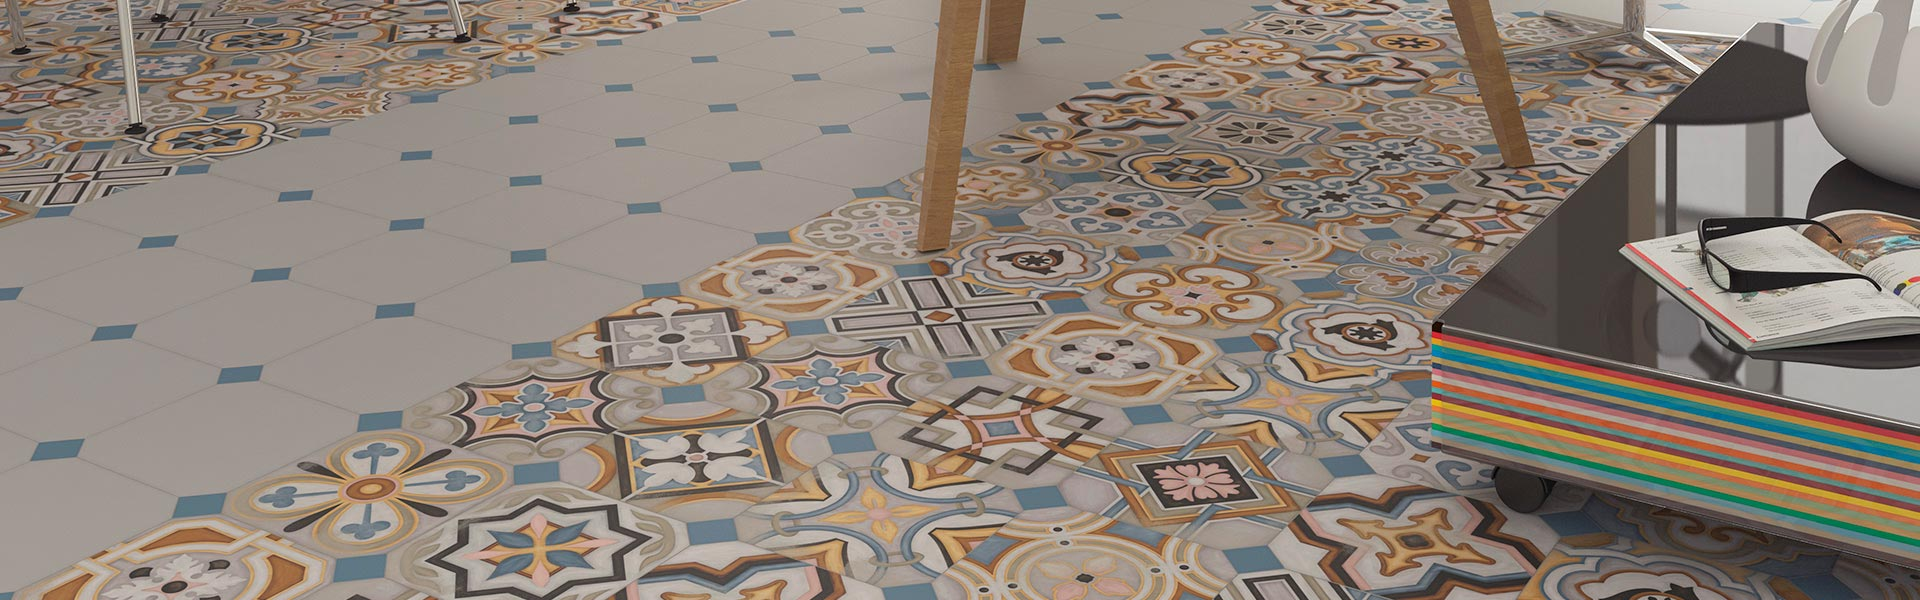 floor tiles porcelain vodevil 20x20 vives azulejos y gres On azulejos vives